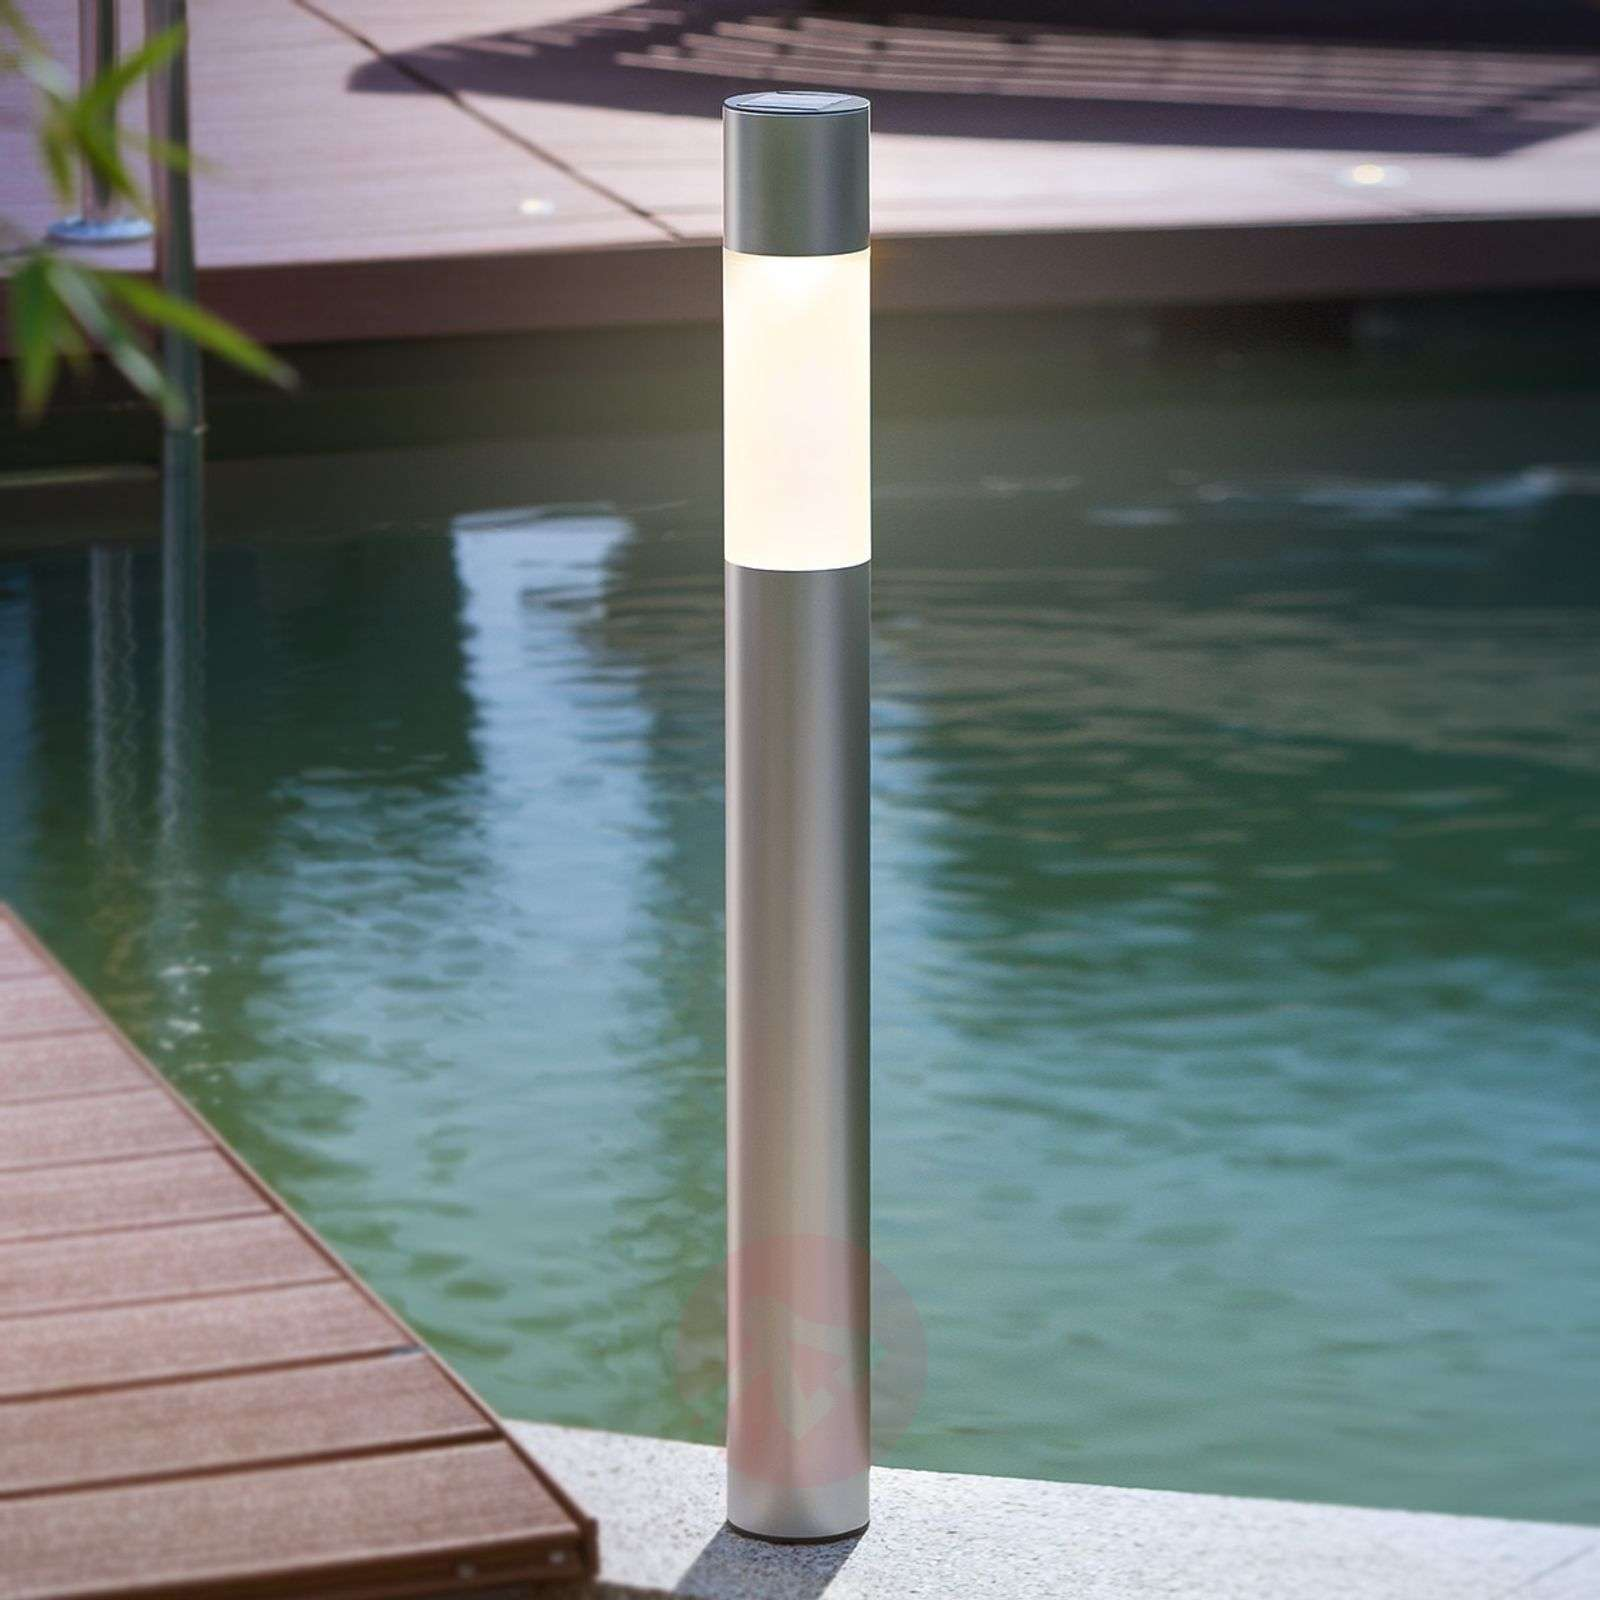 Modern LED solar lamp Pole Light-3012232-01